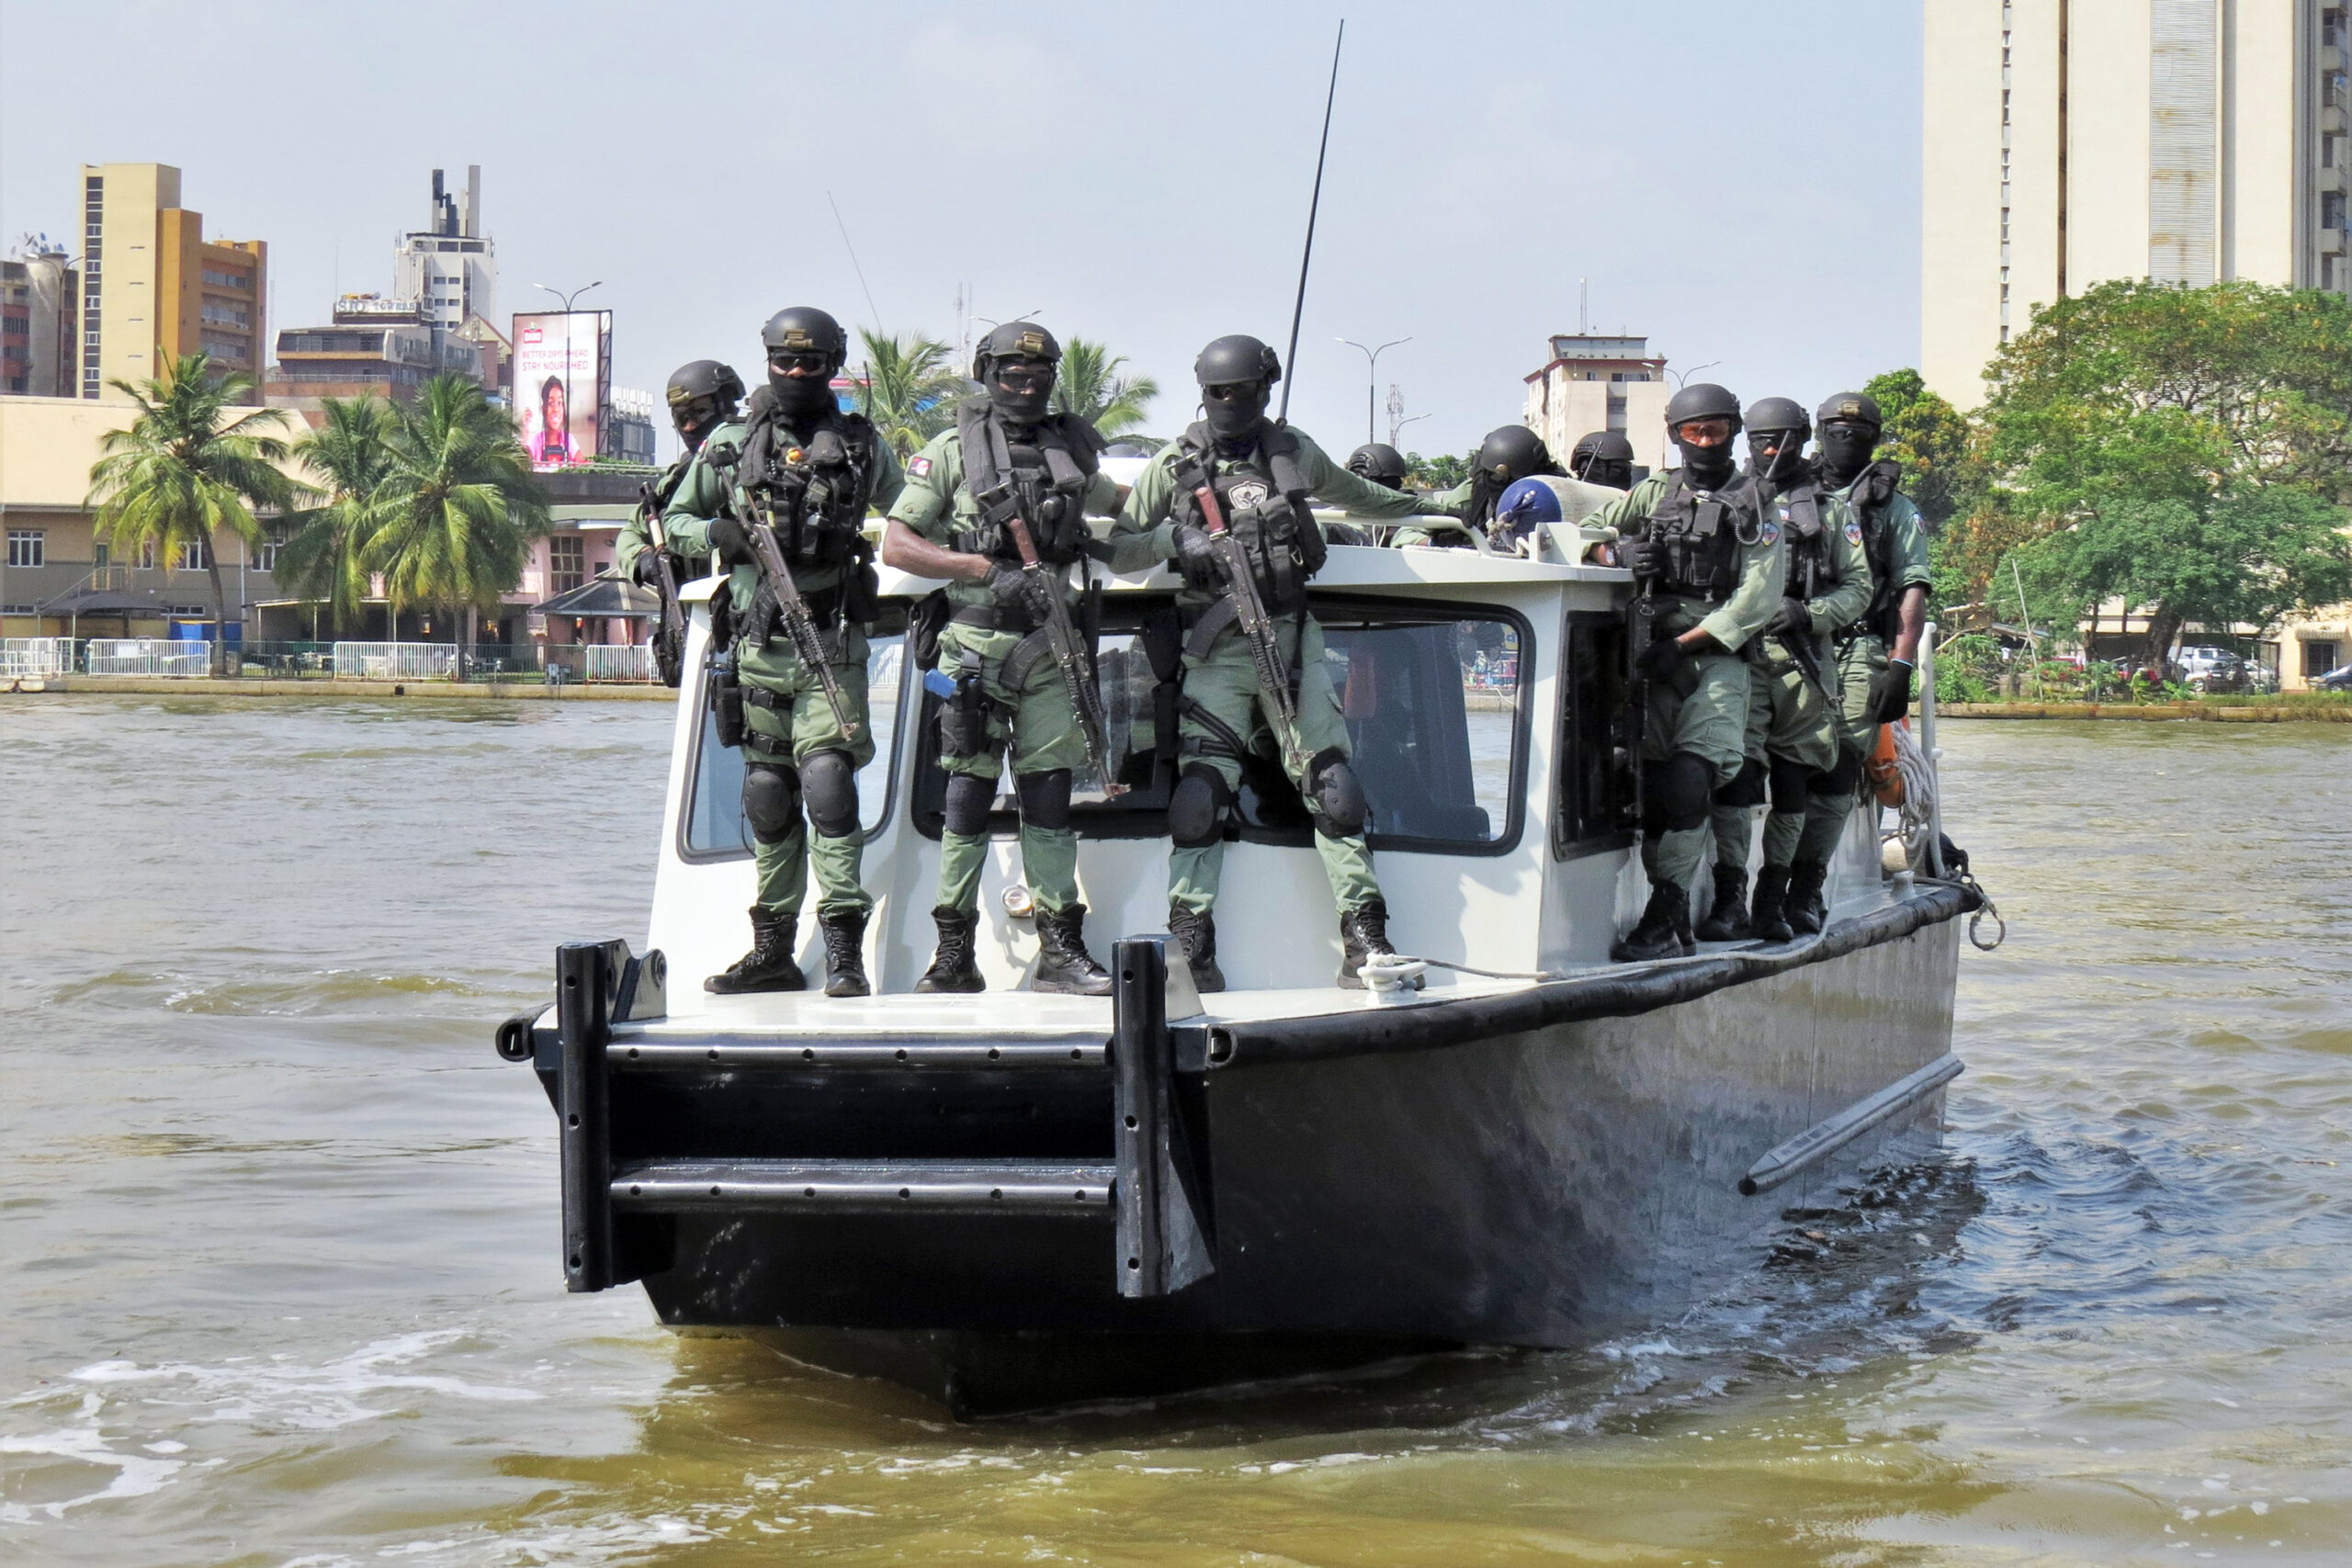 Nigerian police assigned to protect U.S. diplomatic facilities and personnel operate one of their patrol boats in the coastal city of Lagos in November 2020. The police are part of a Special Program for Embassy Augmentation Response (SPEAR) team. SPEAR teams are quick-response forces trained and funded by the Diplomatic Security Service's Office of Antiterrorism Assistance (ATA). (Department of State photo)